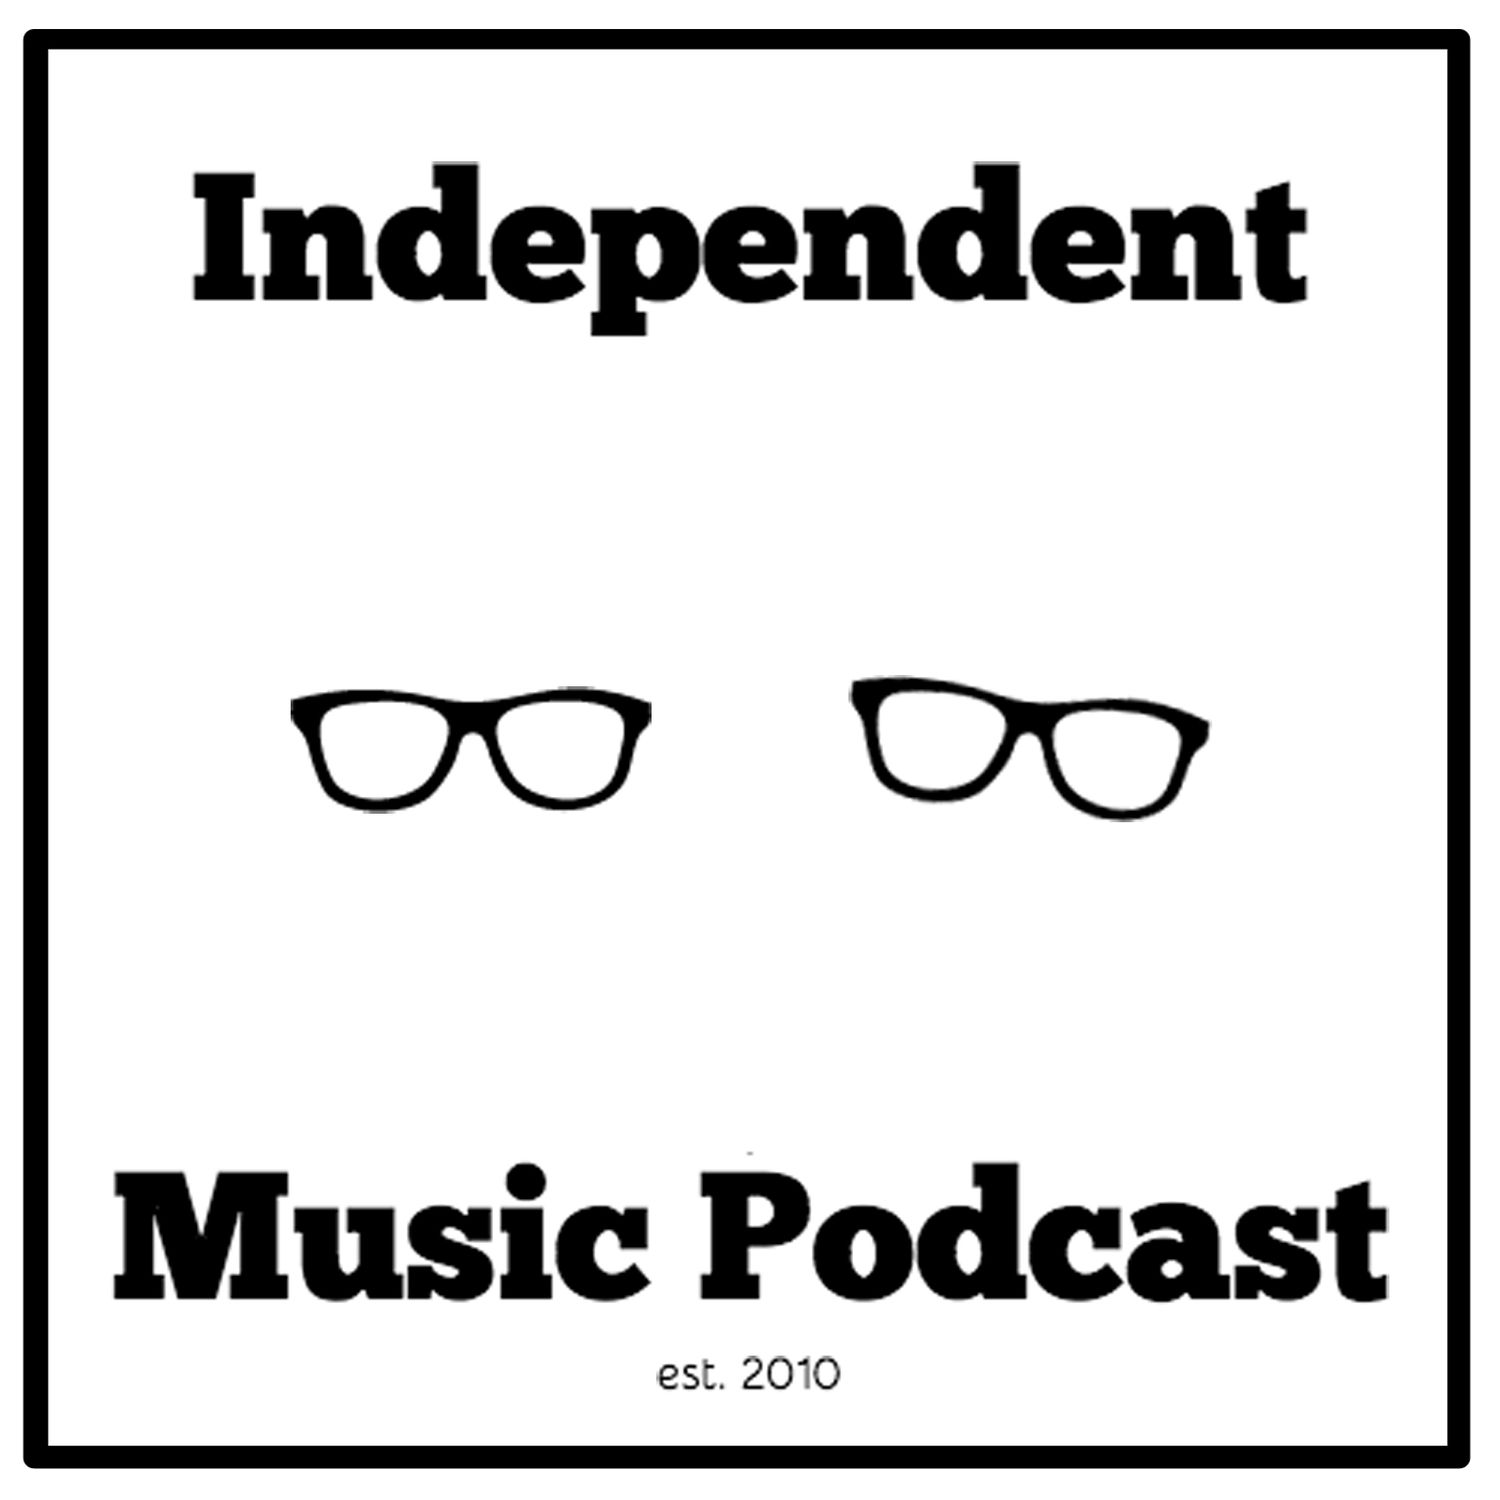 Independent Music Podcast by Acast on Apple Podcasts